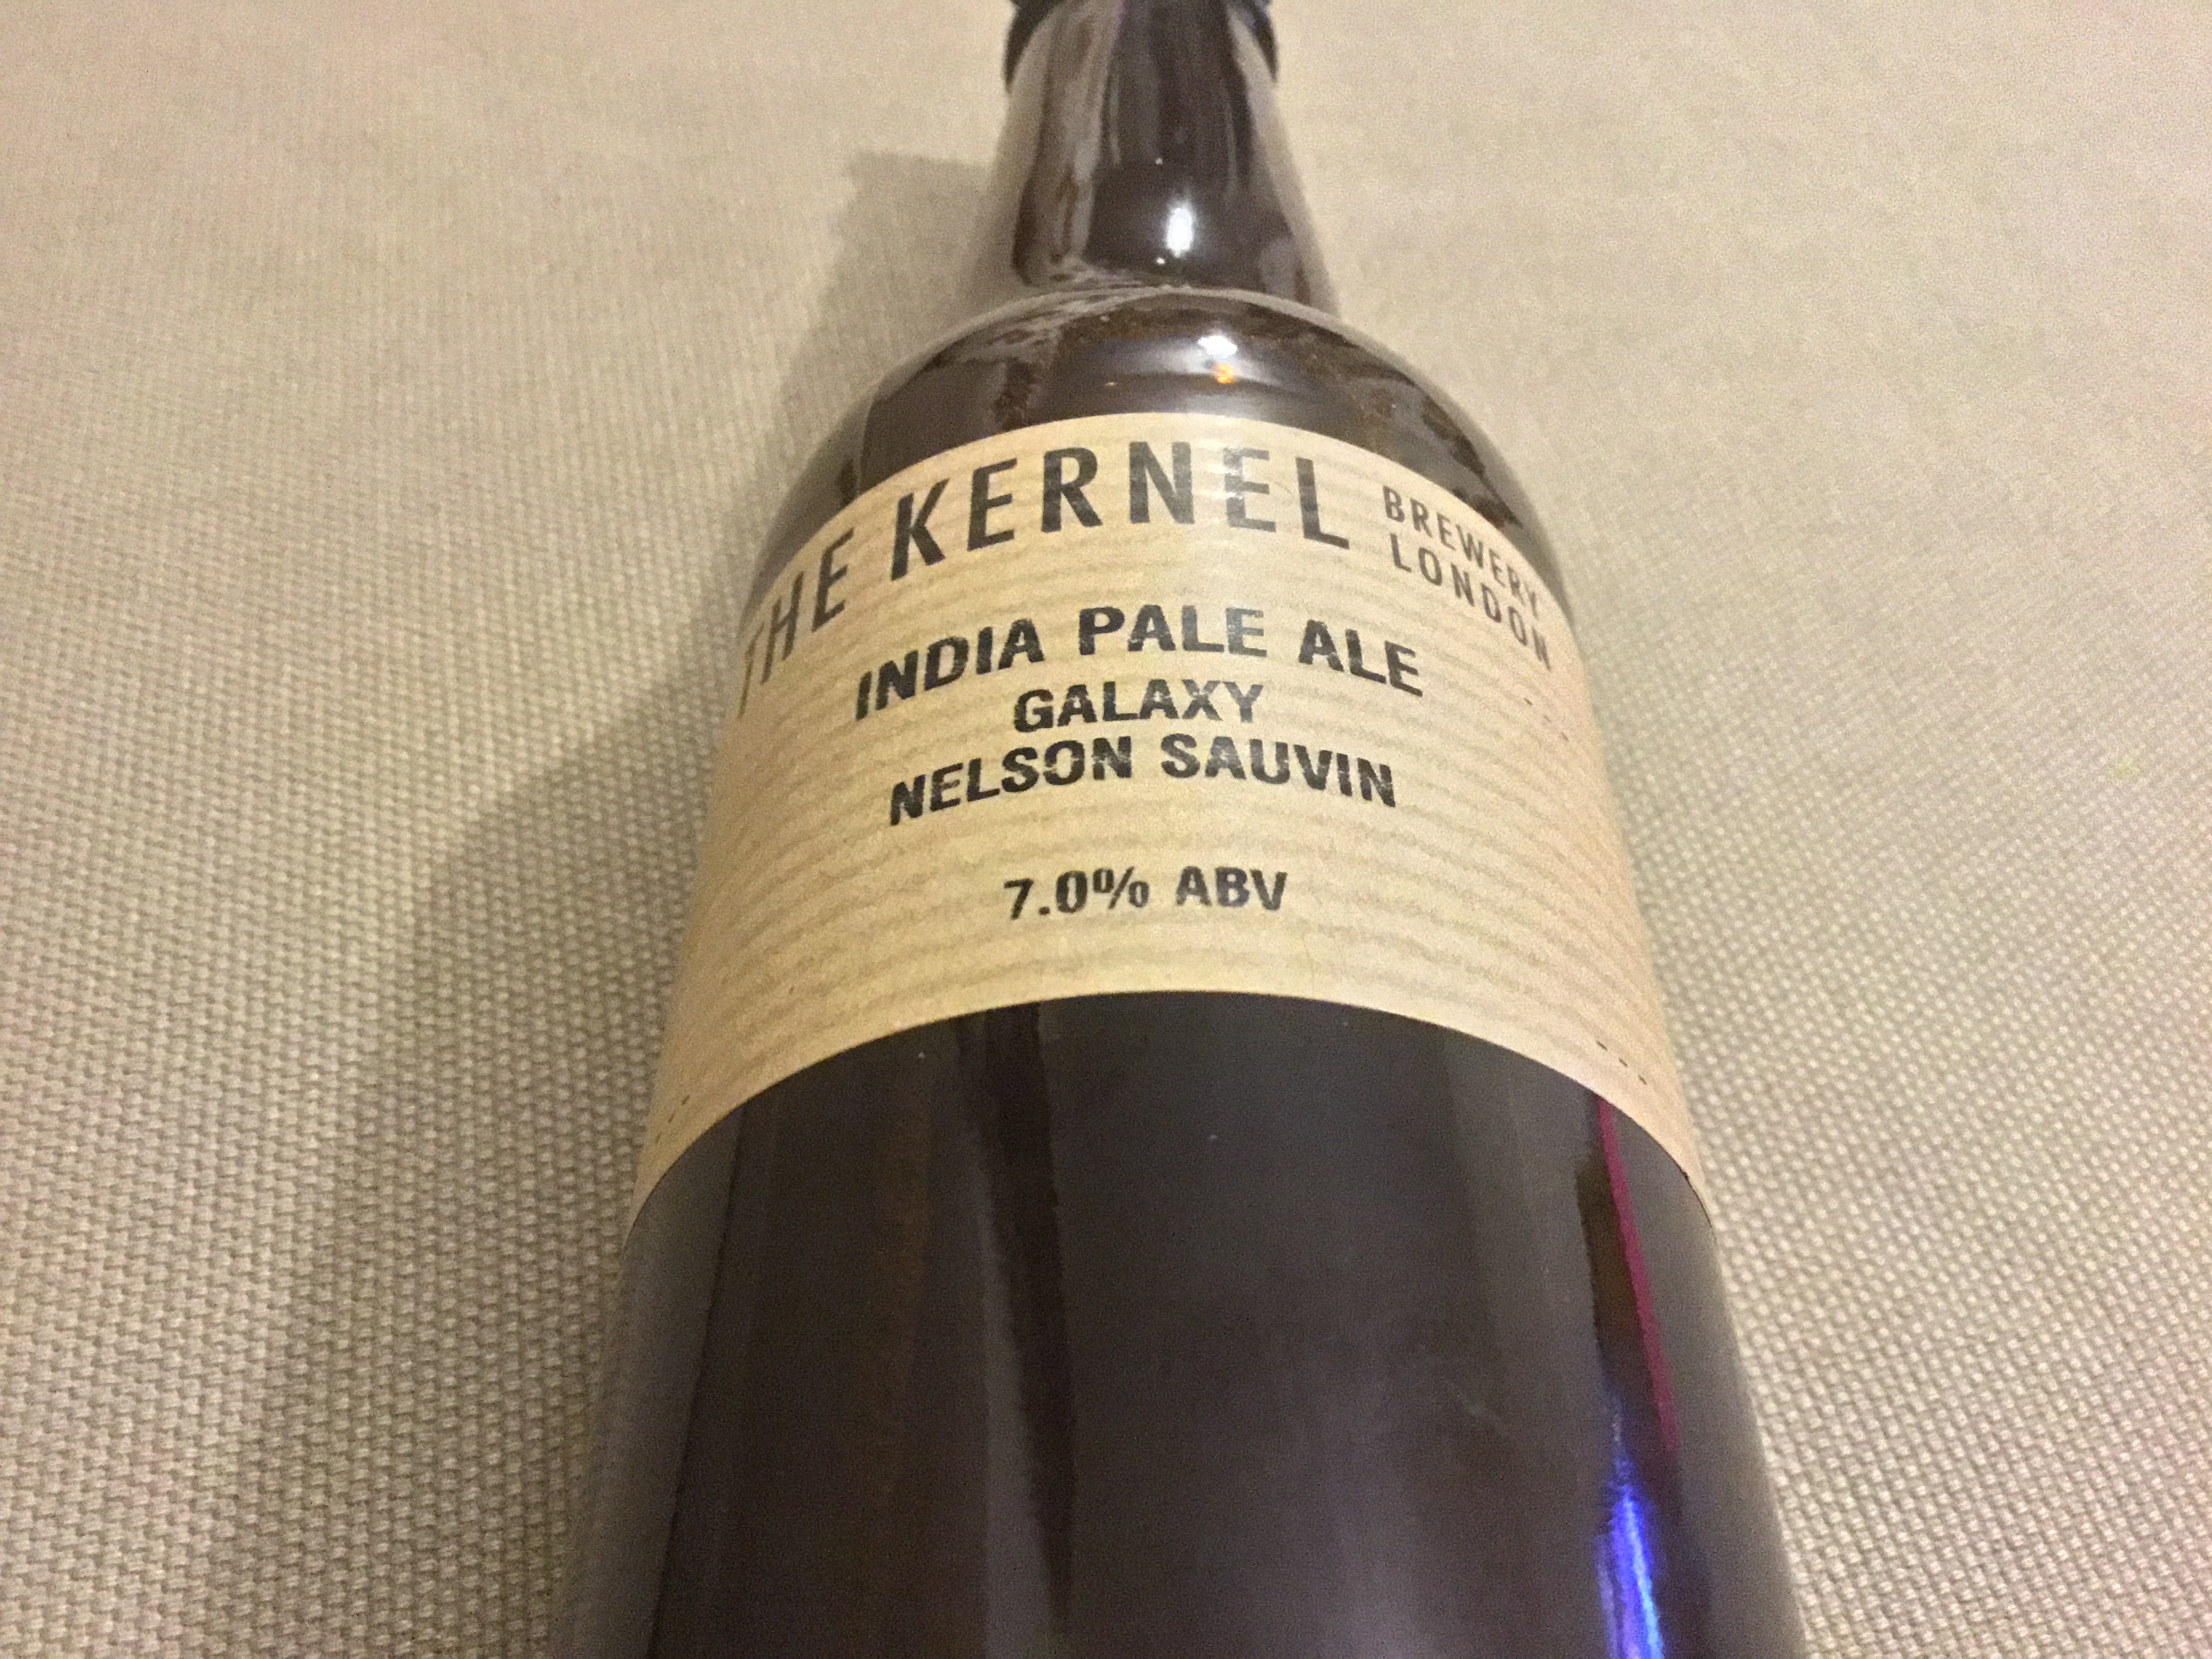 IPA Galaxy Nelson Sauvin 7% 330ml The Kernel Brewery London